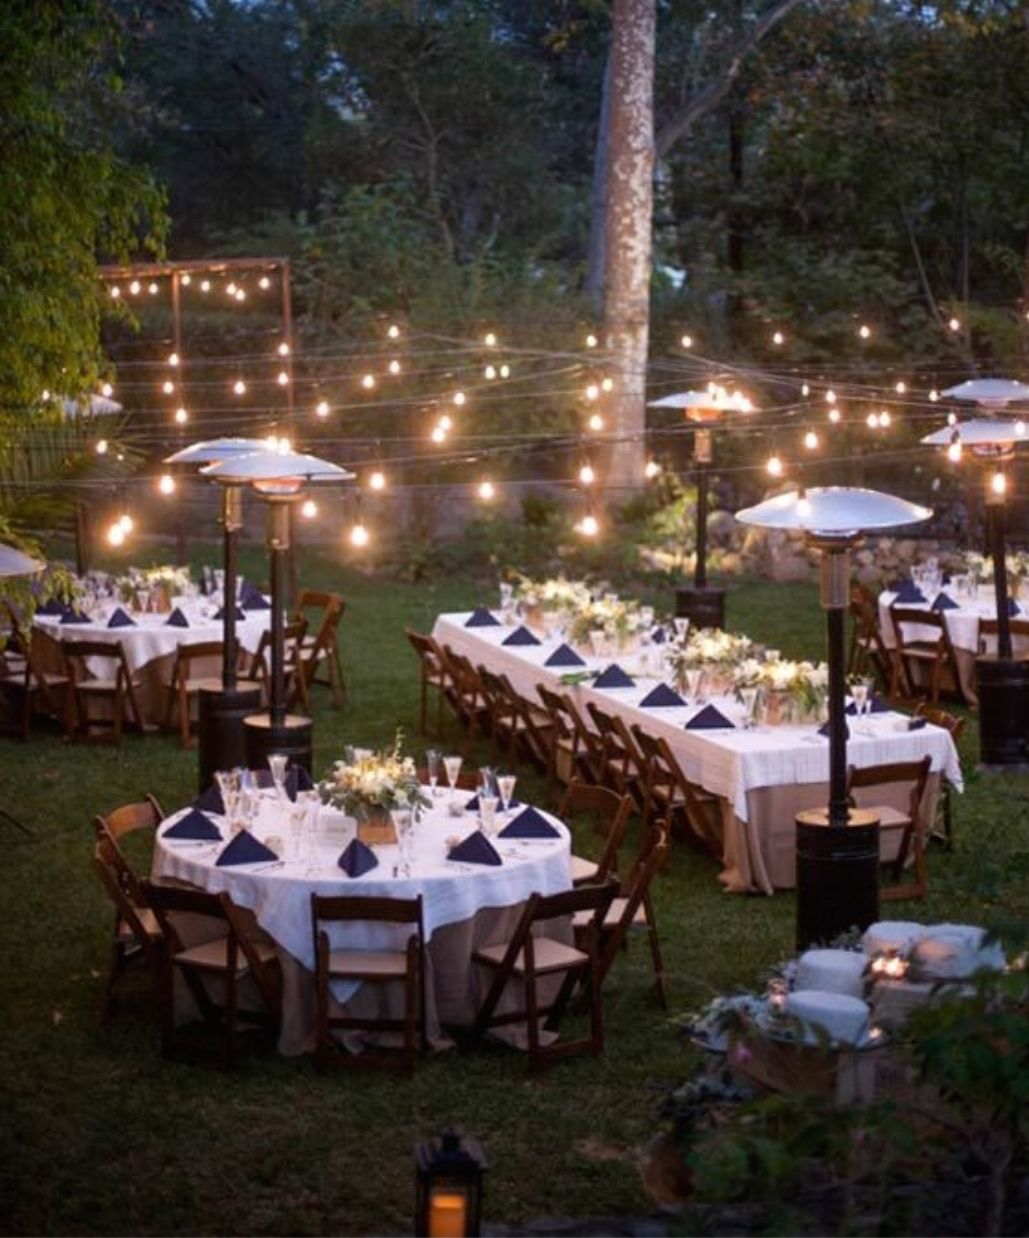 Outdoor Wedding Seating Ideas: We Have The Perfect Location To Do This! #landowner